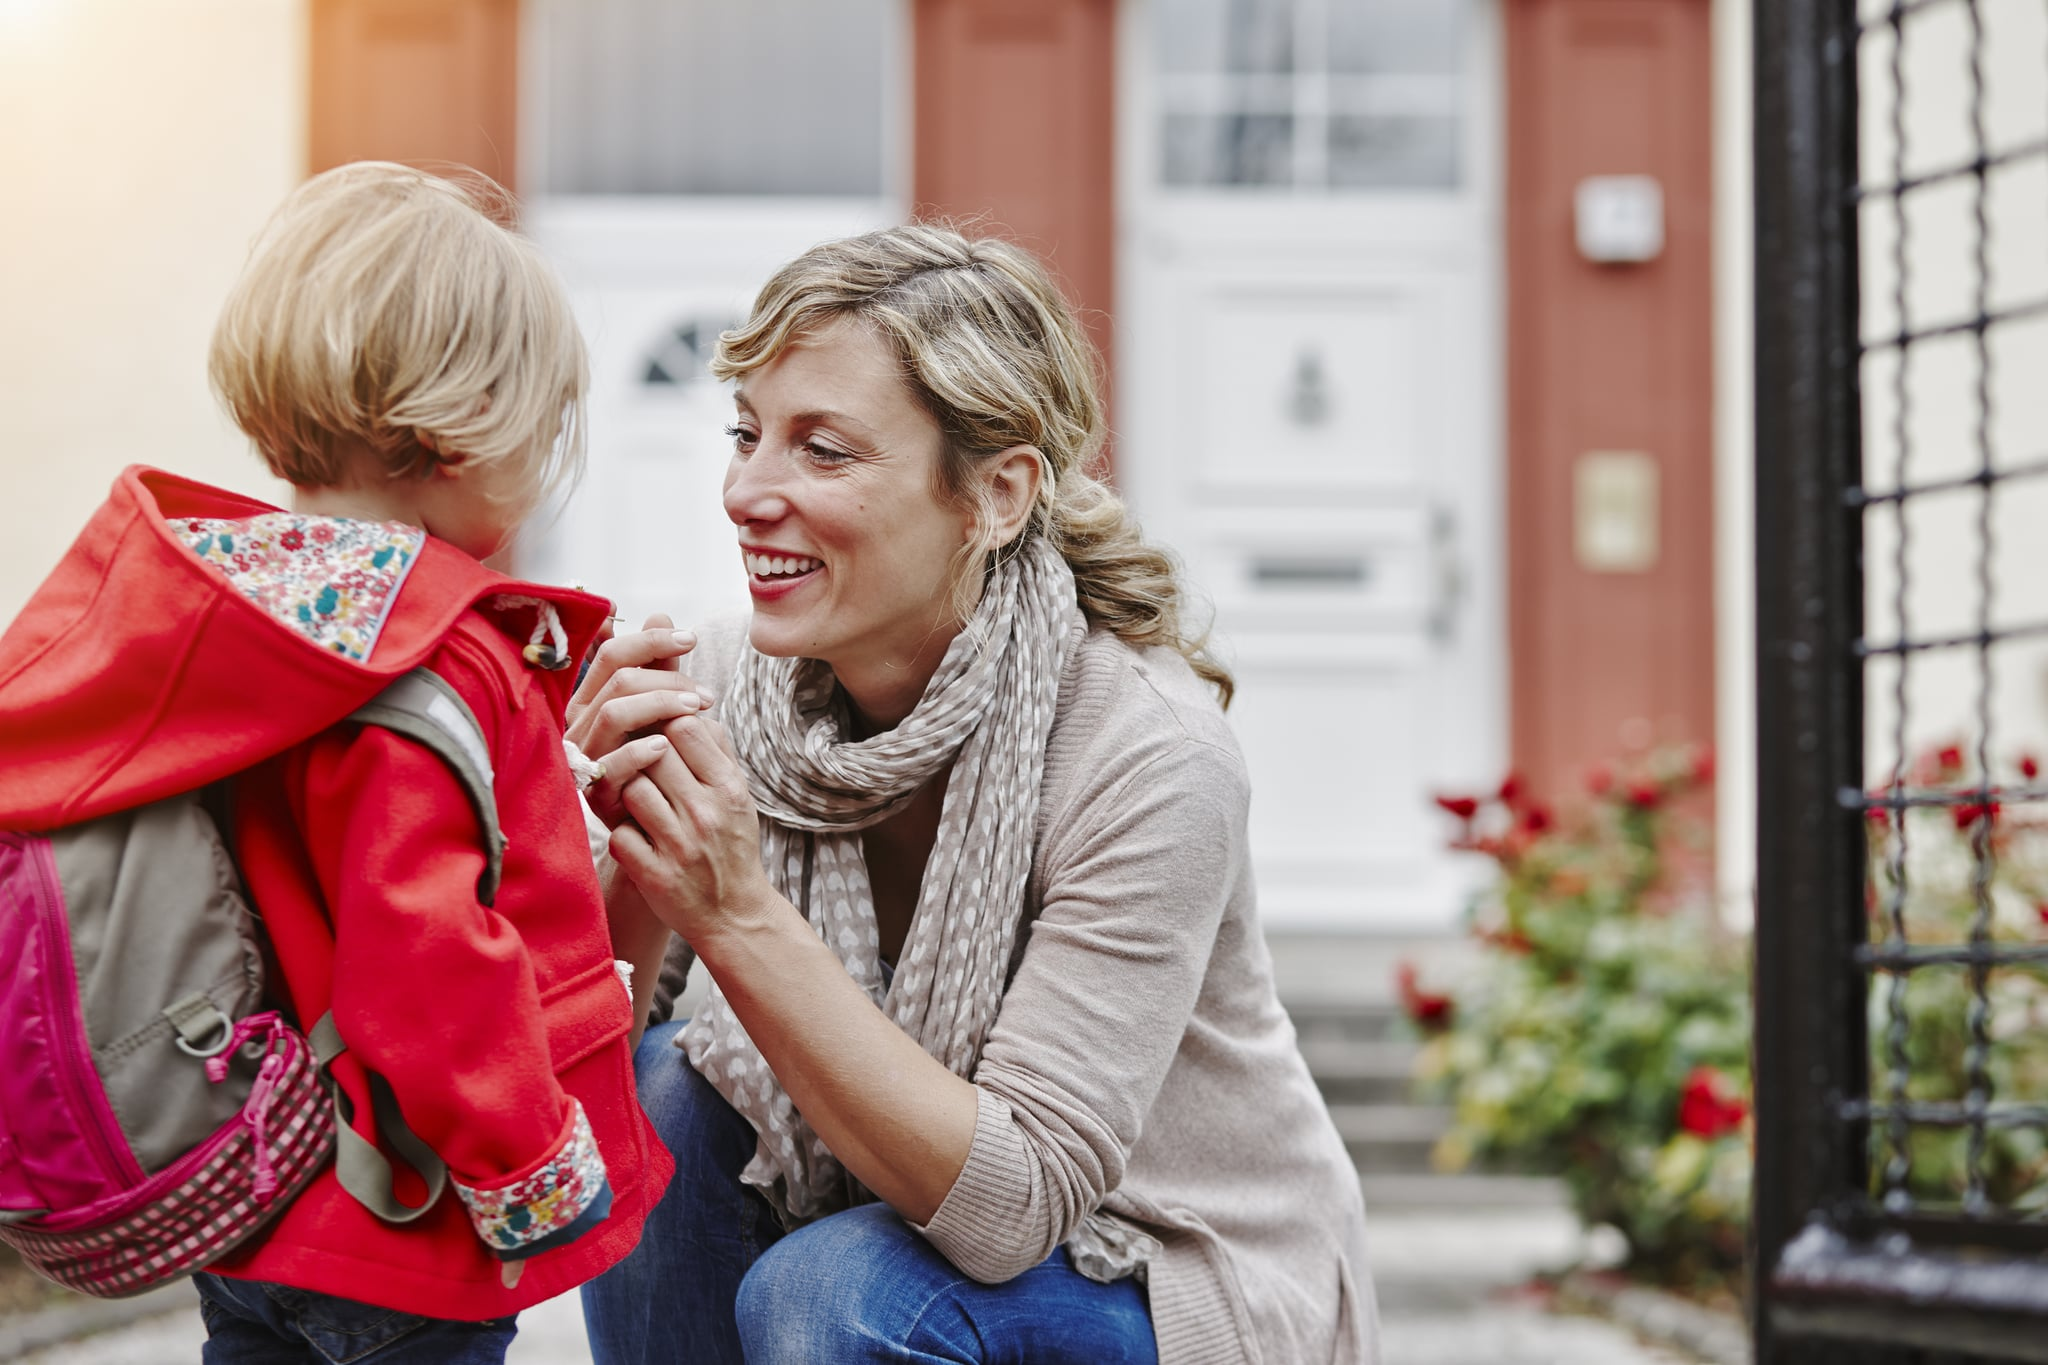 How to Prepare Your Child For a Positive Daycare Experience